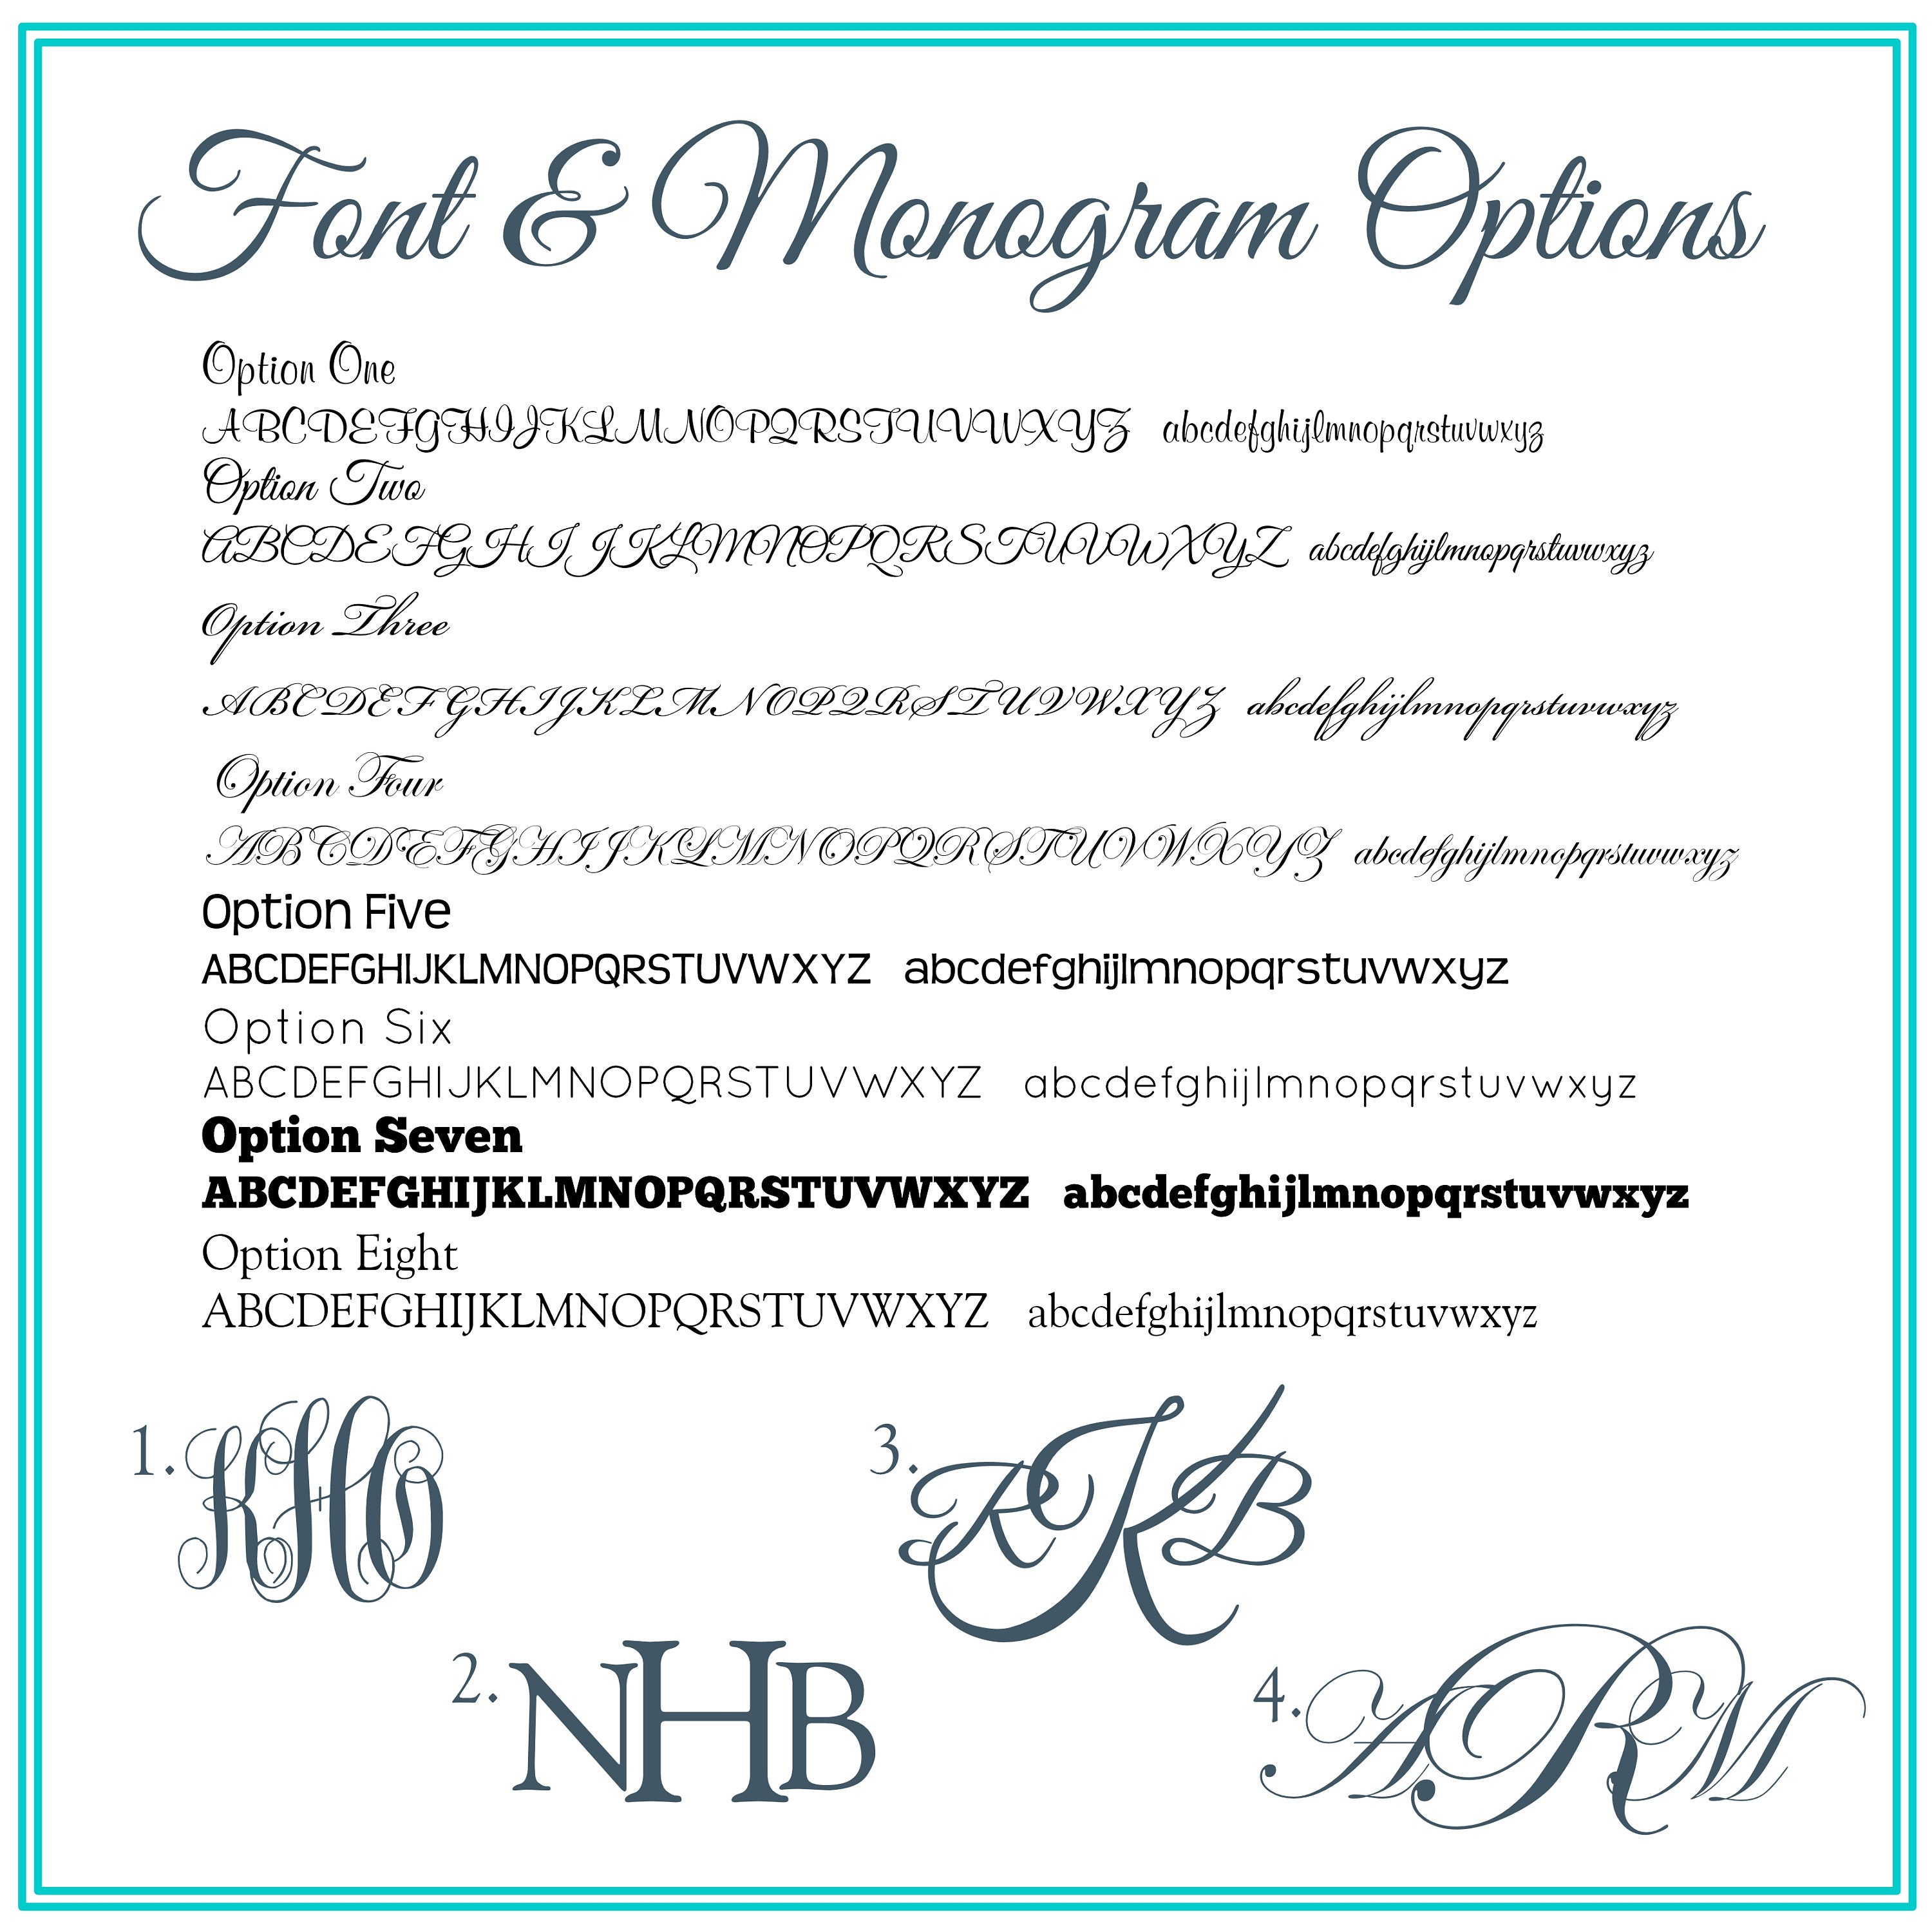 digital printable sorority recruitment packet with photo and